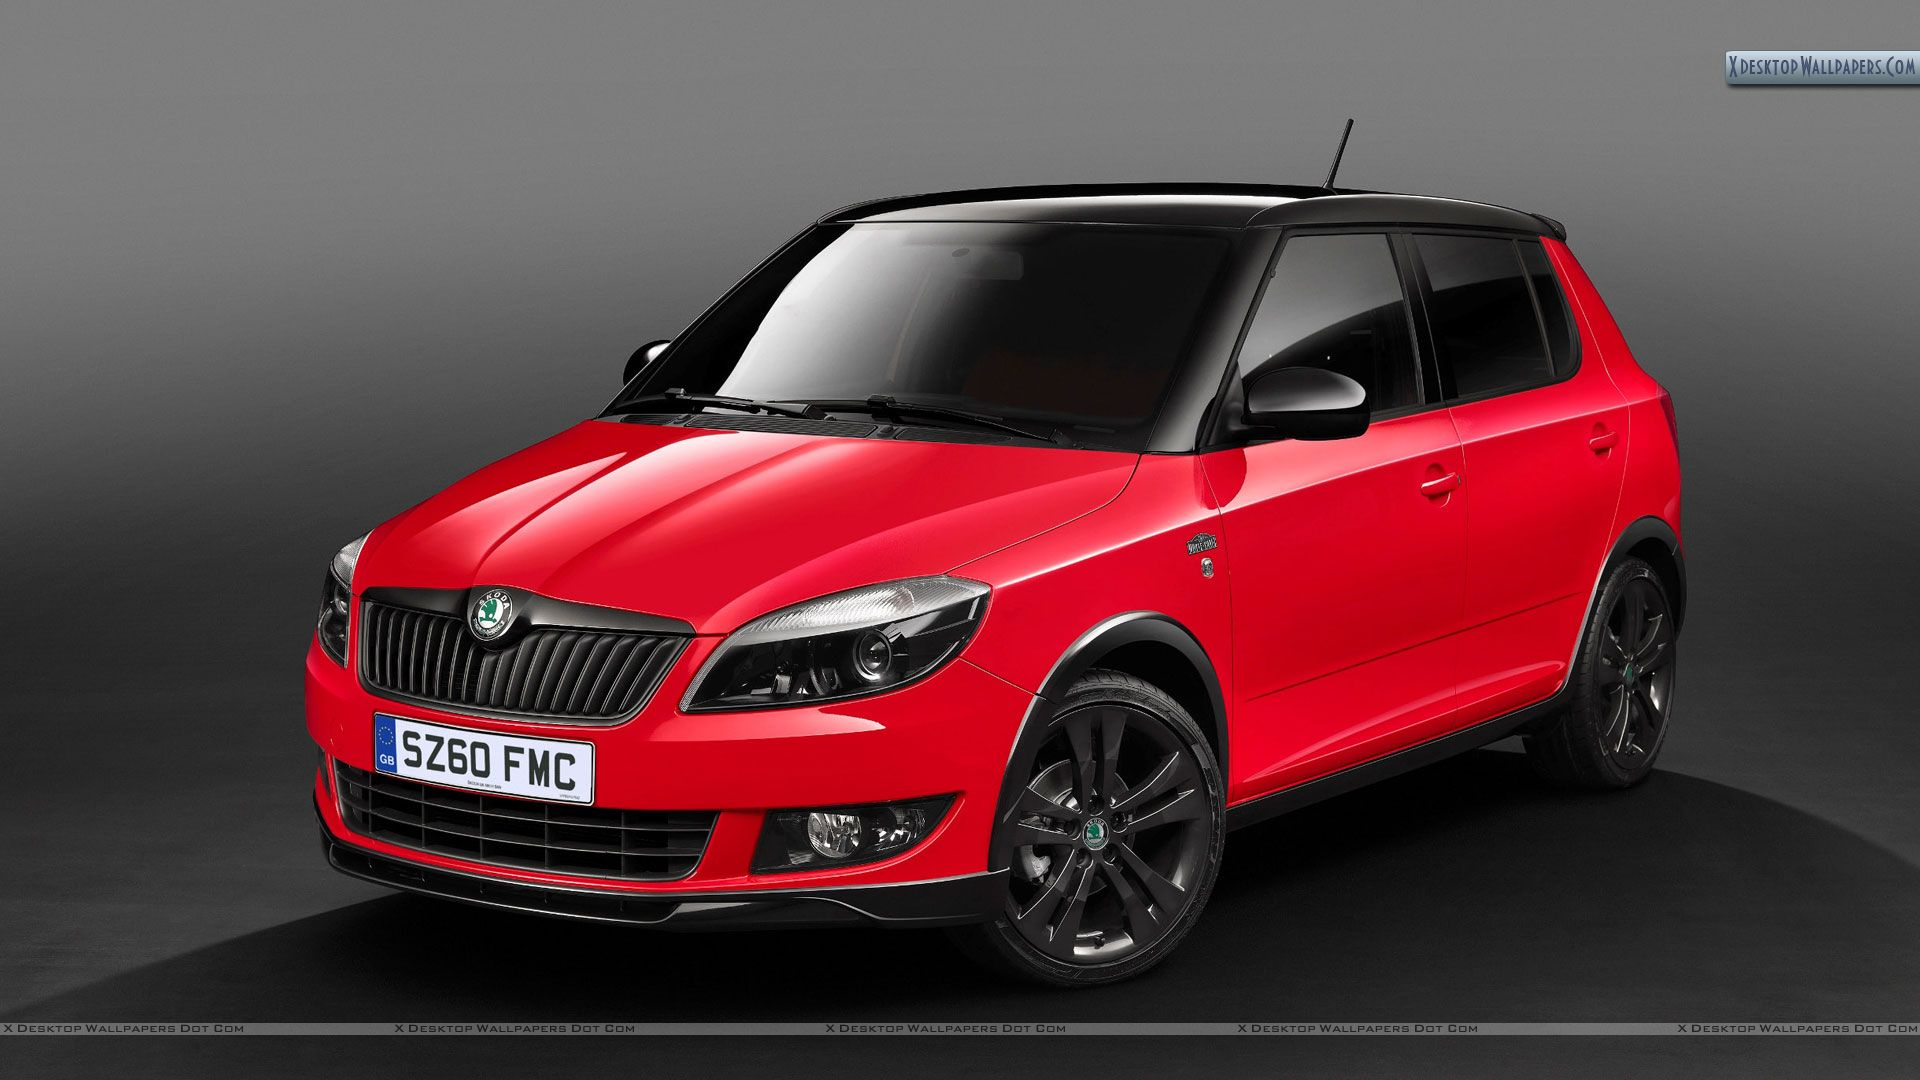 skoda fabia wallpapers photos images in hd. Black Bedroom Furniture Sets. Home Design Ideas